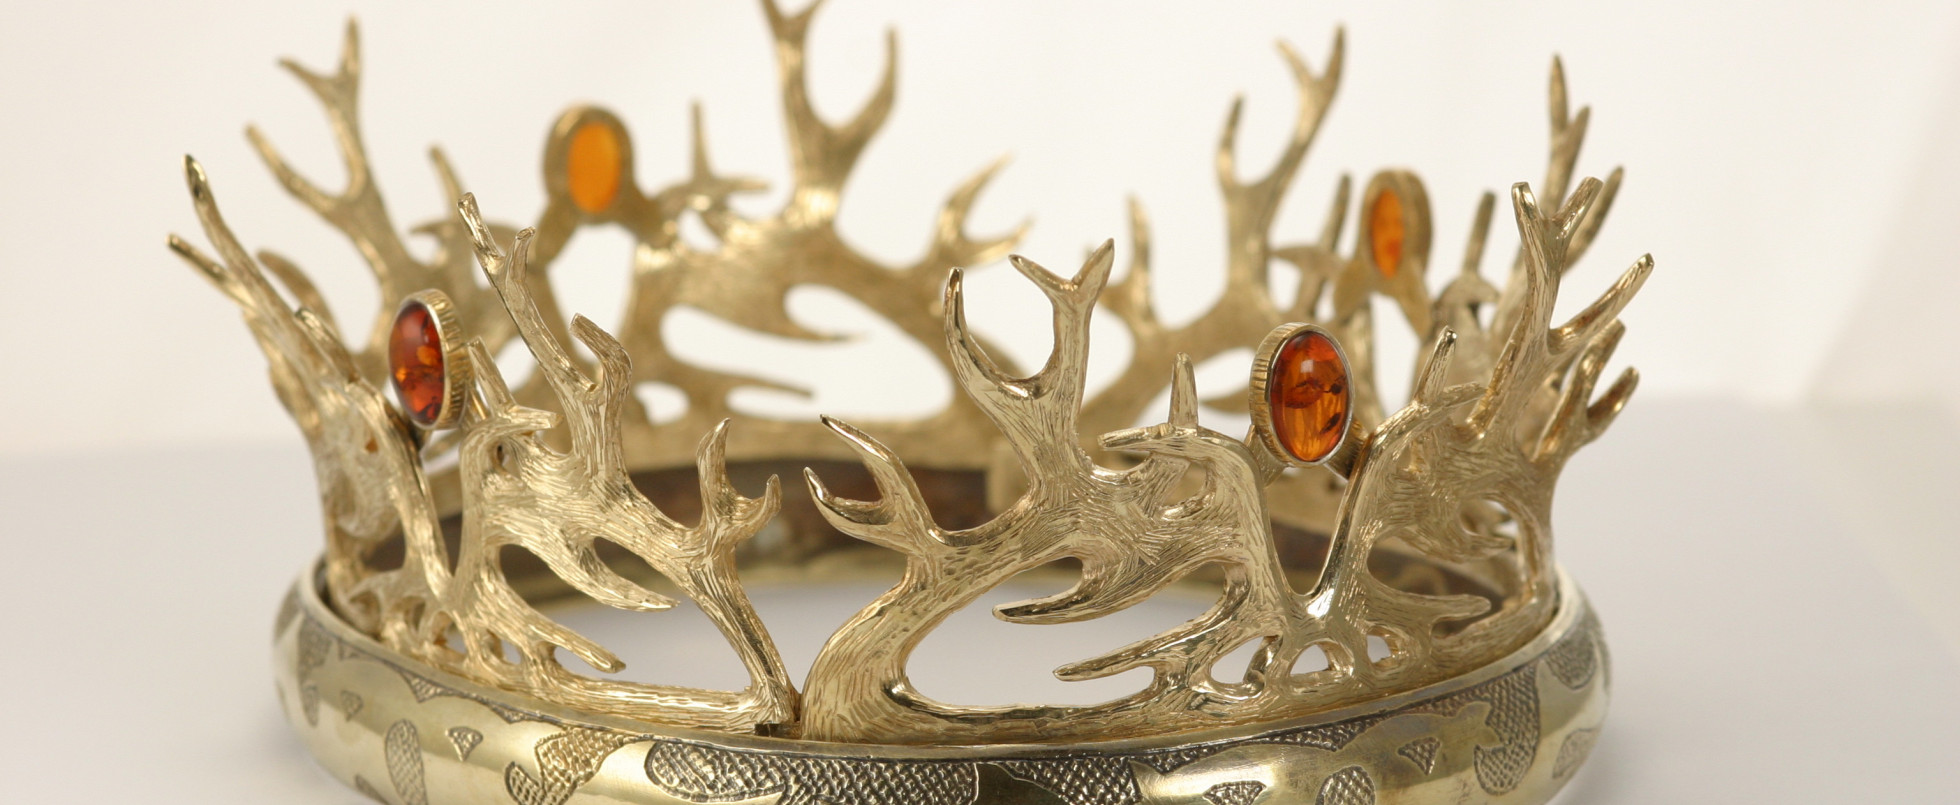 Crafting Jewellery Fit For a King